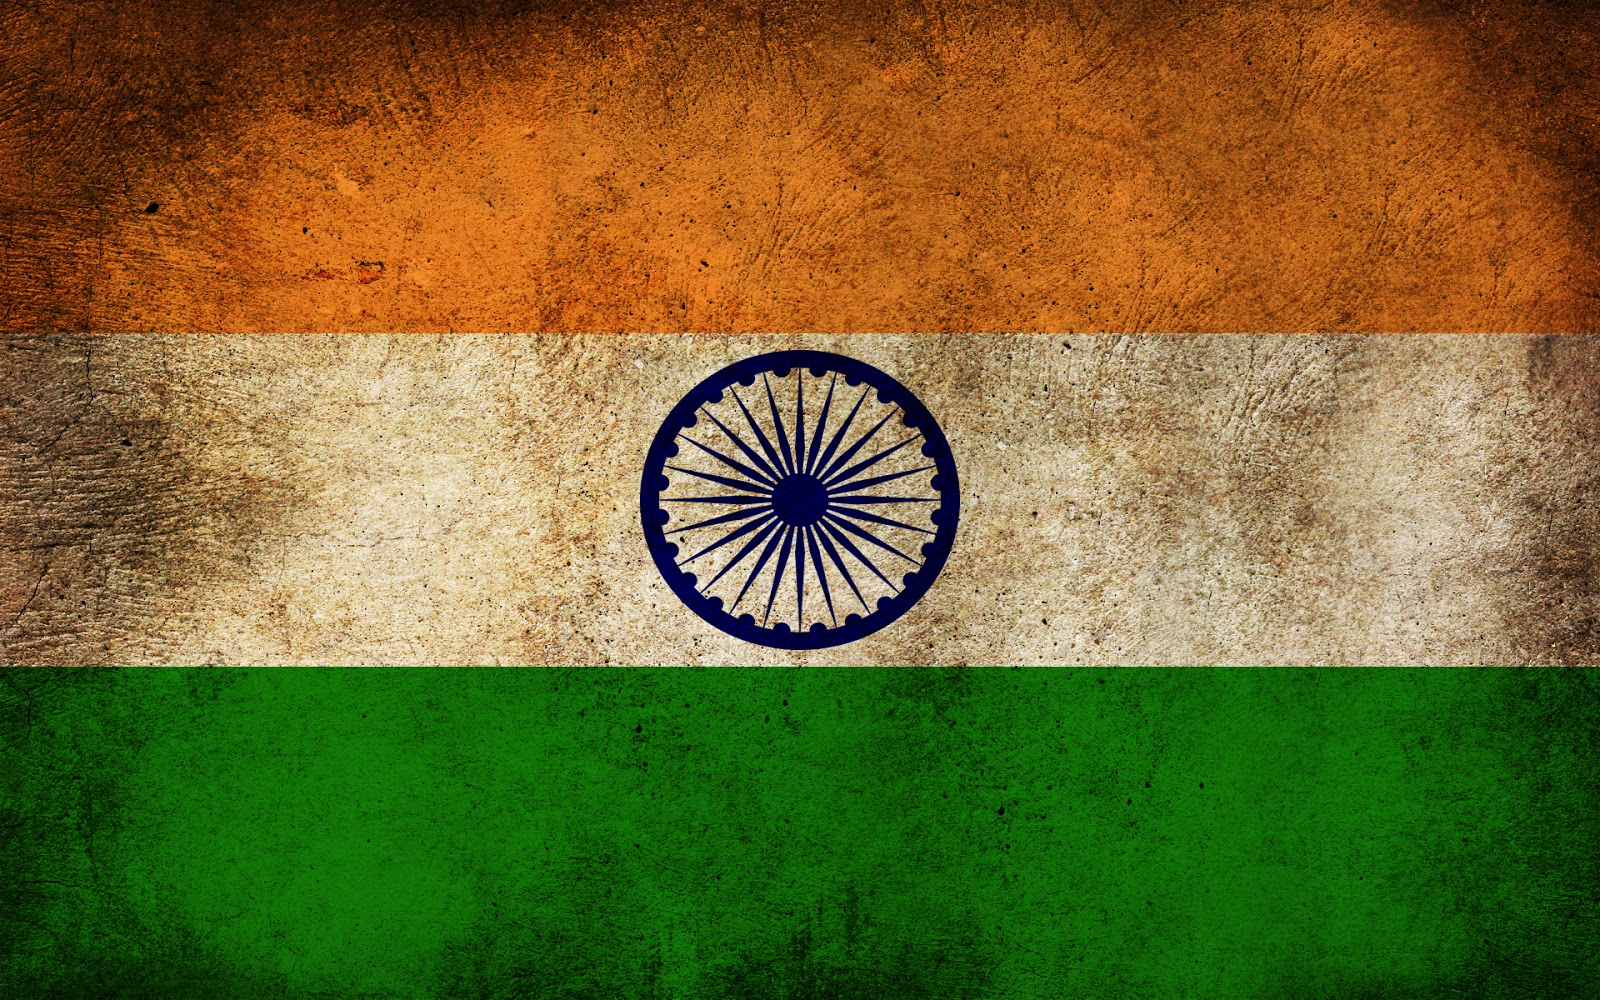 Indian Flag Images Hd720p: Top Best Hd Happy Republic Day India 26 January 2013 High